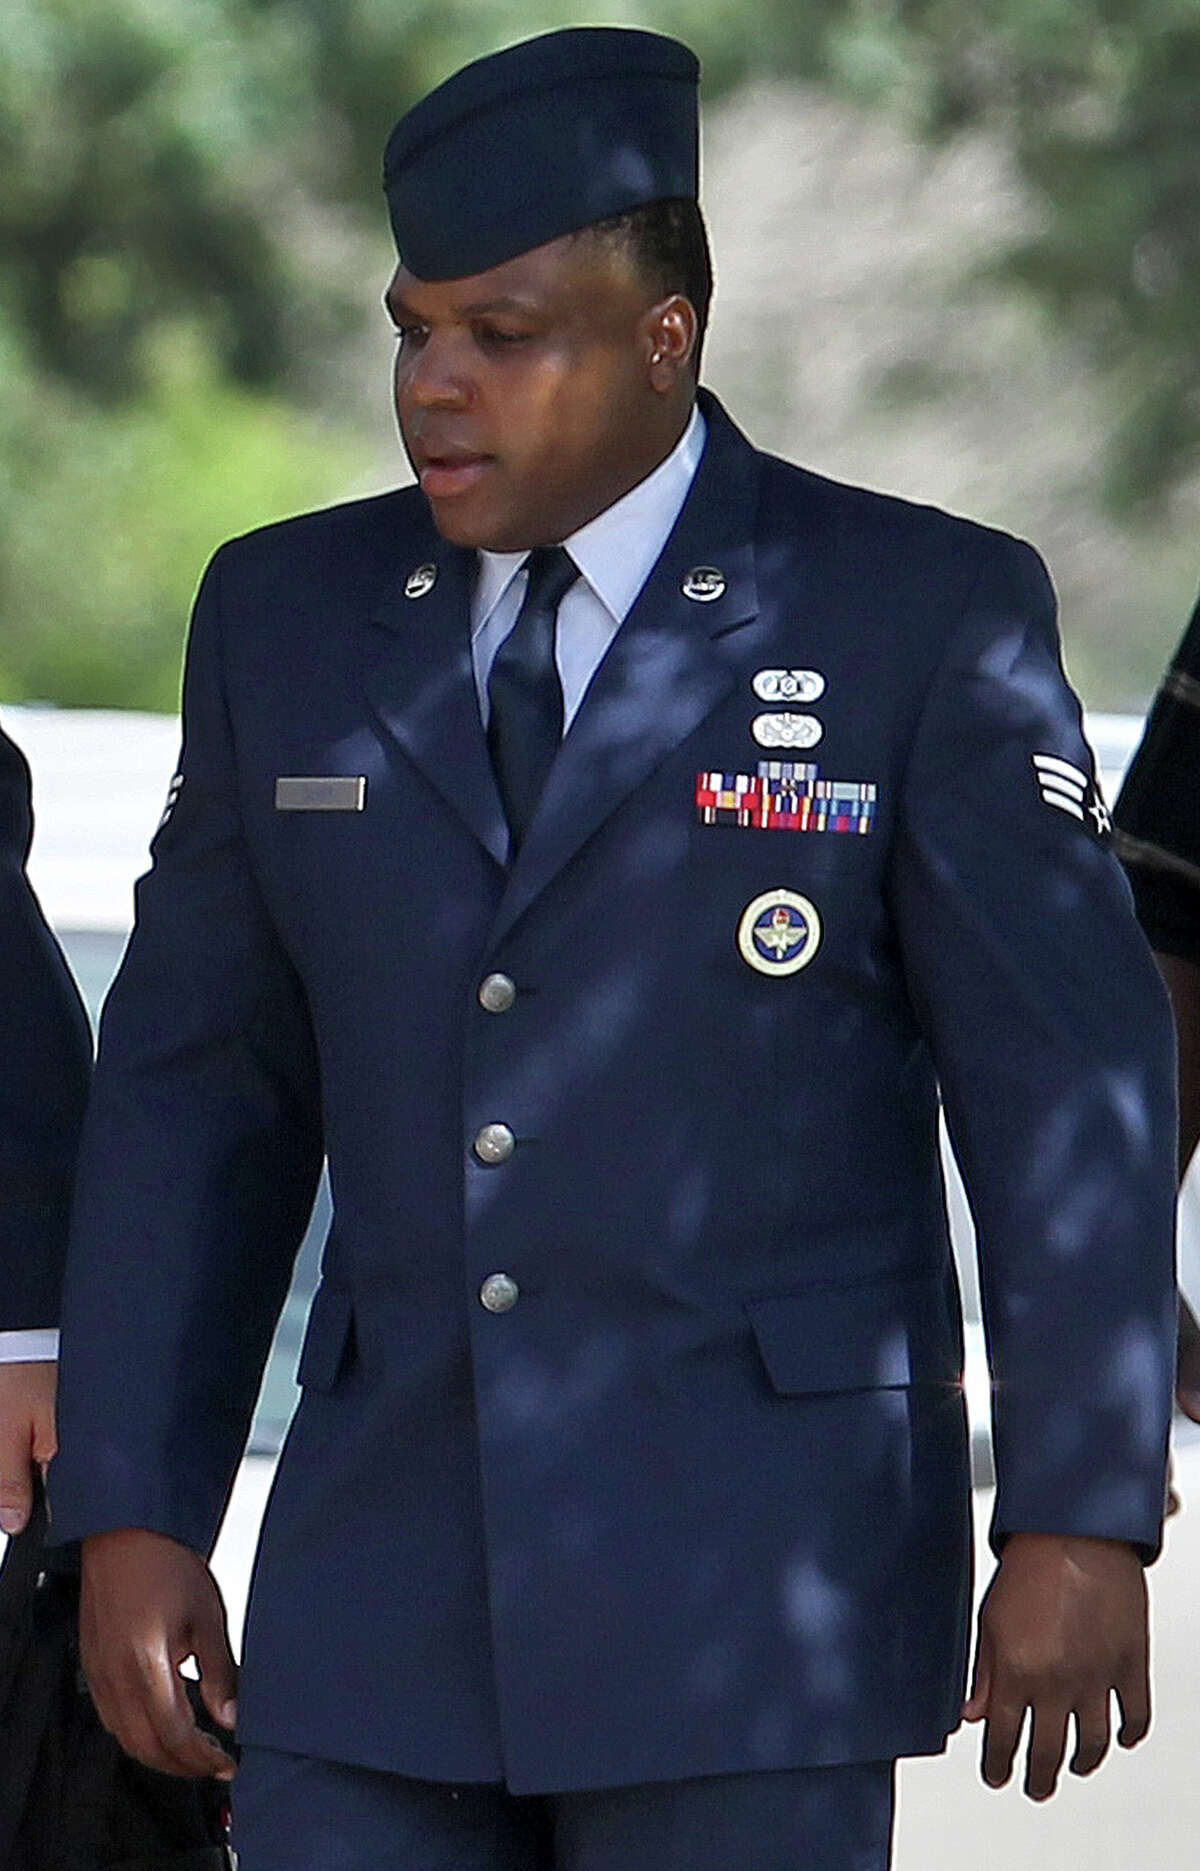 Senior Airman Christopher Oliver walks Monday June 24, 2013 at Joint Base San Antonio-Lackland. Oliver is facing a court-martial on charges of aggravated sexual assault and abusive sexual conduct of one basic training recruit and other charges.